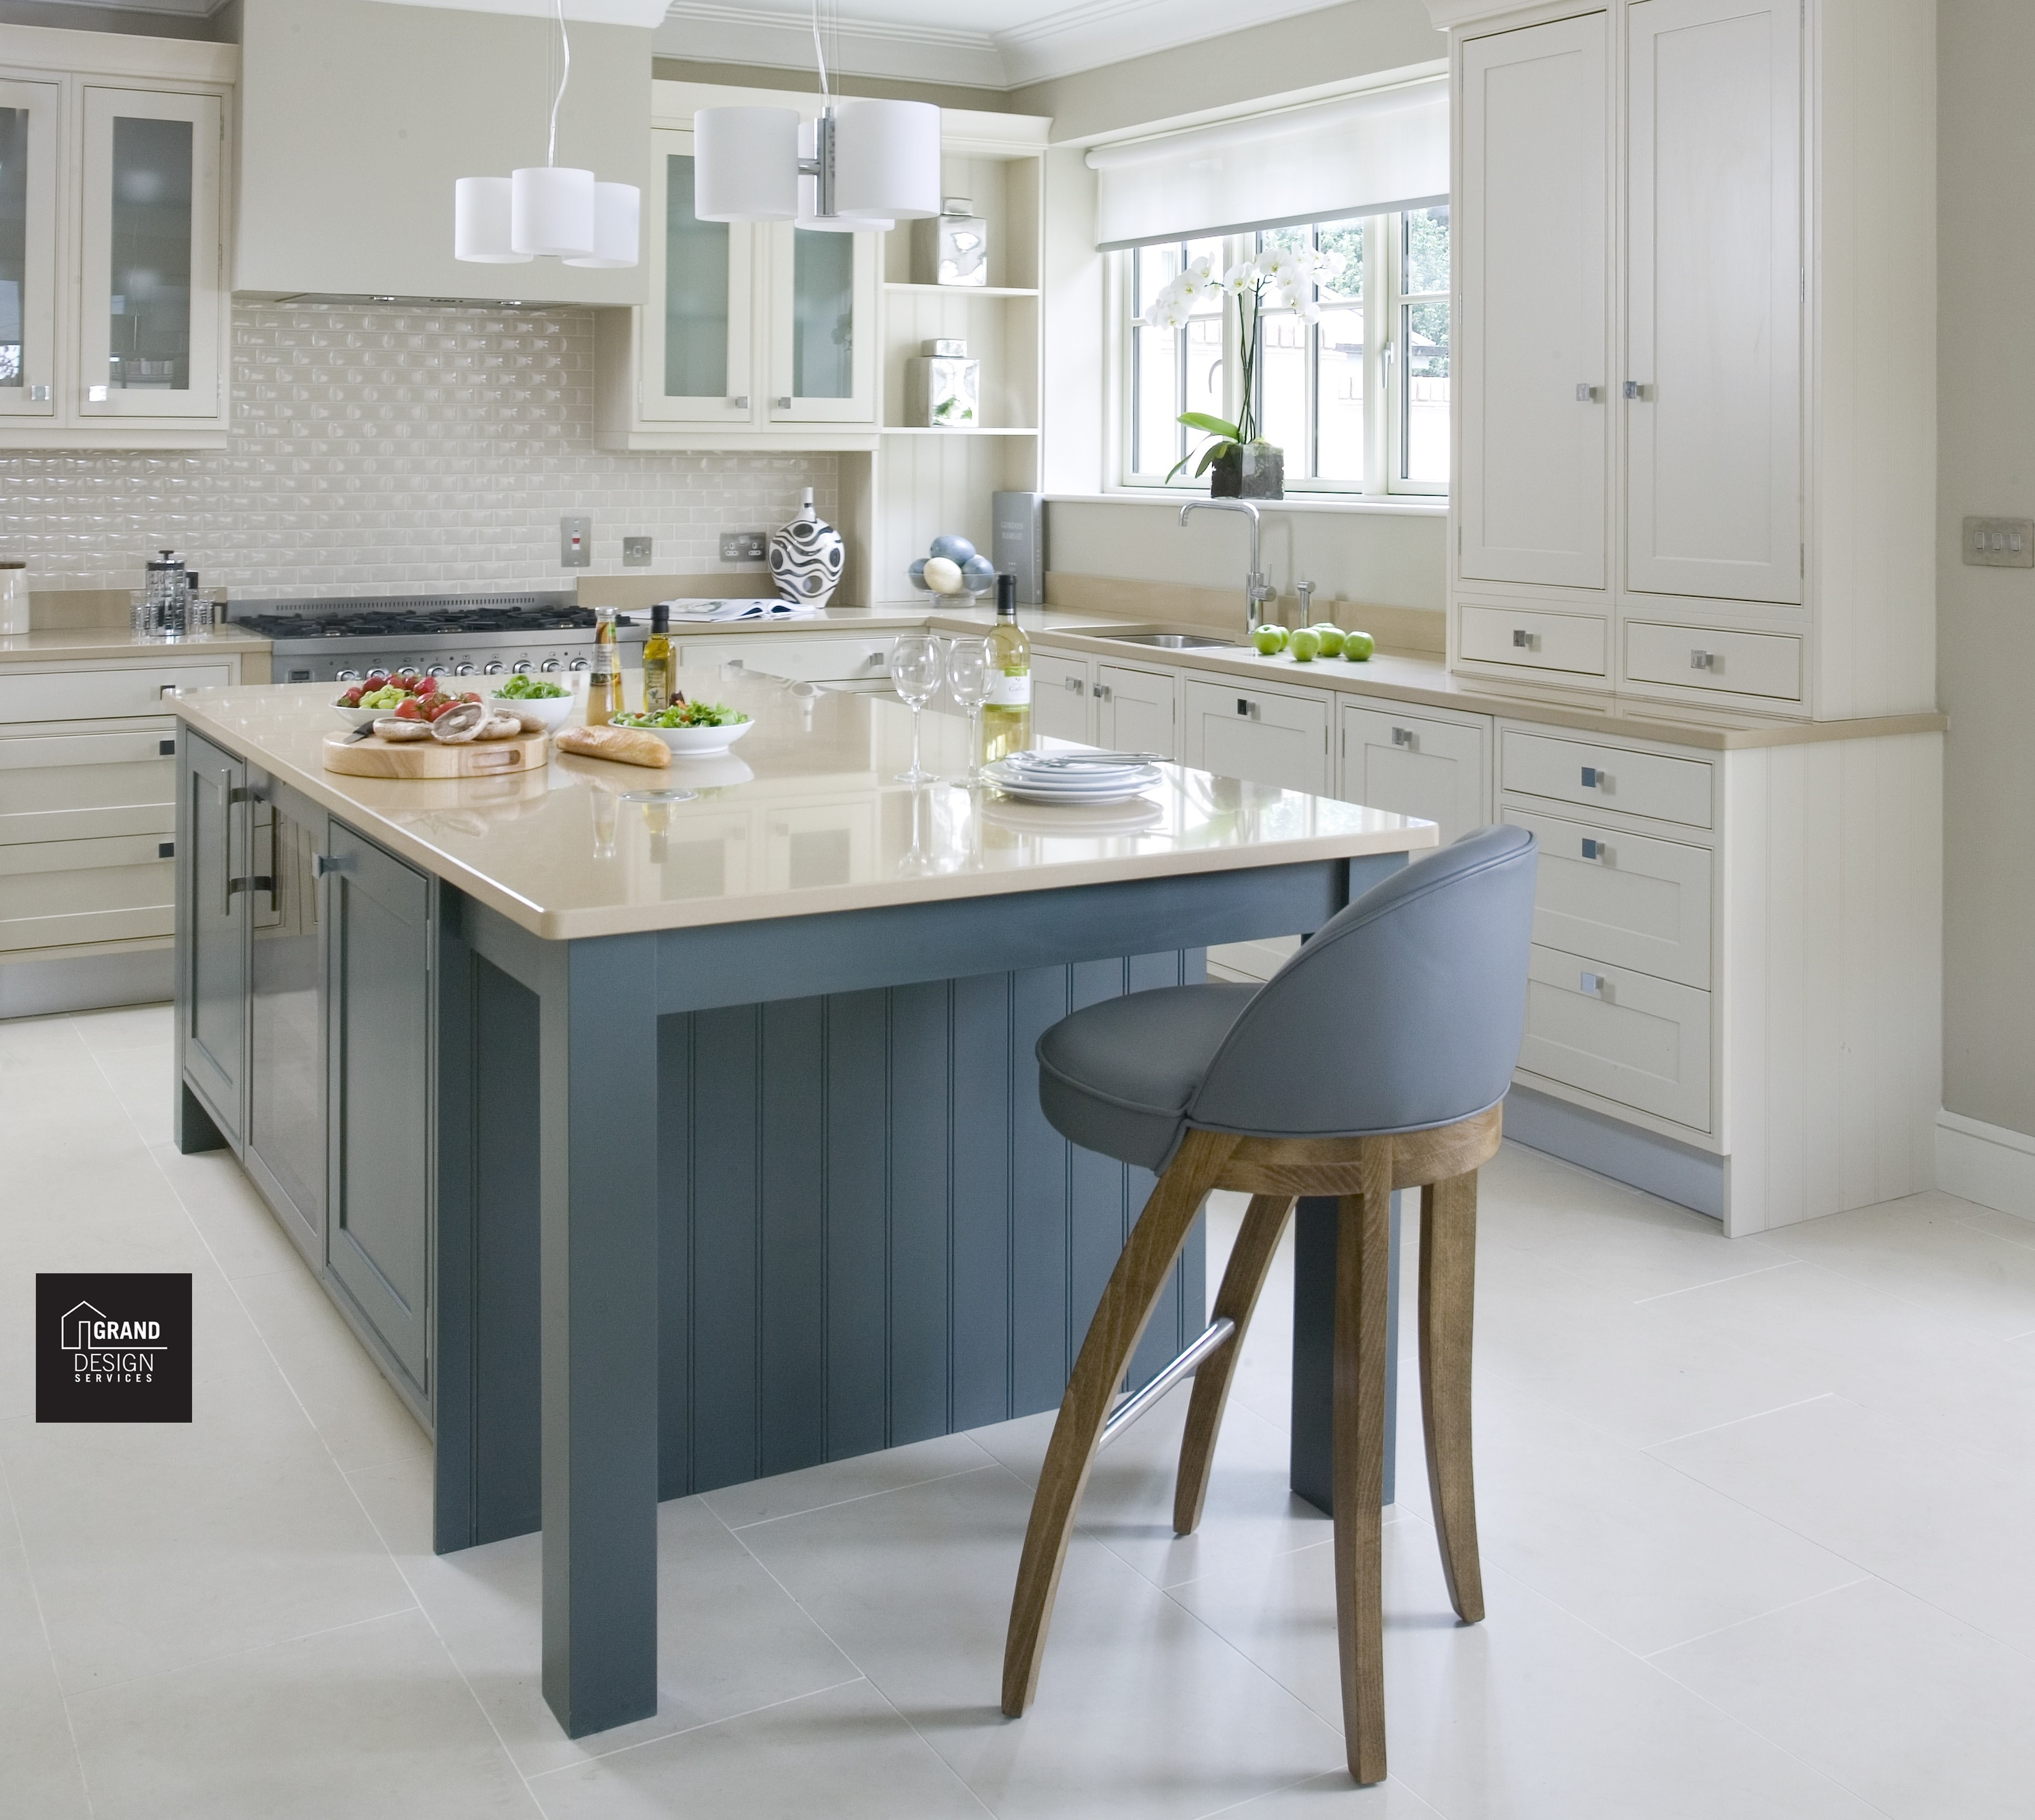 Grand design kitchens grimsby cleethorpes for Bathroom design grimsby